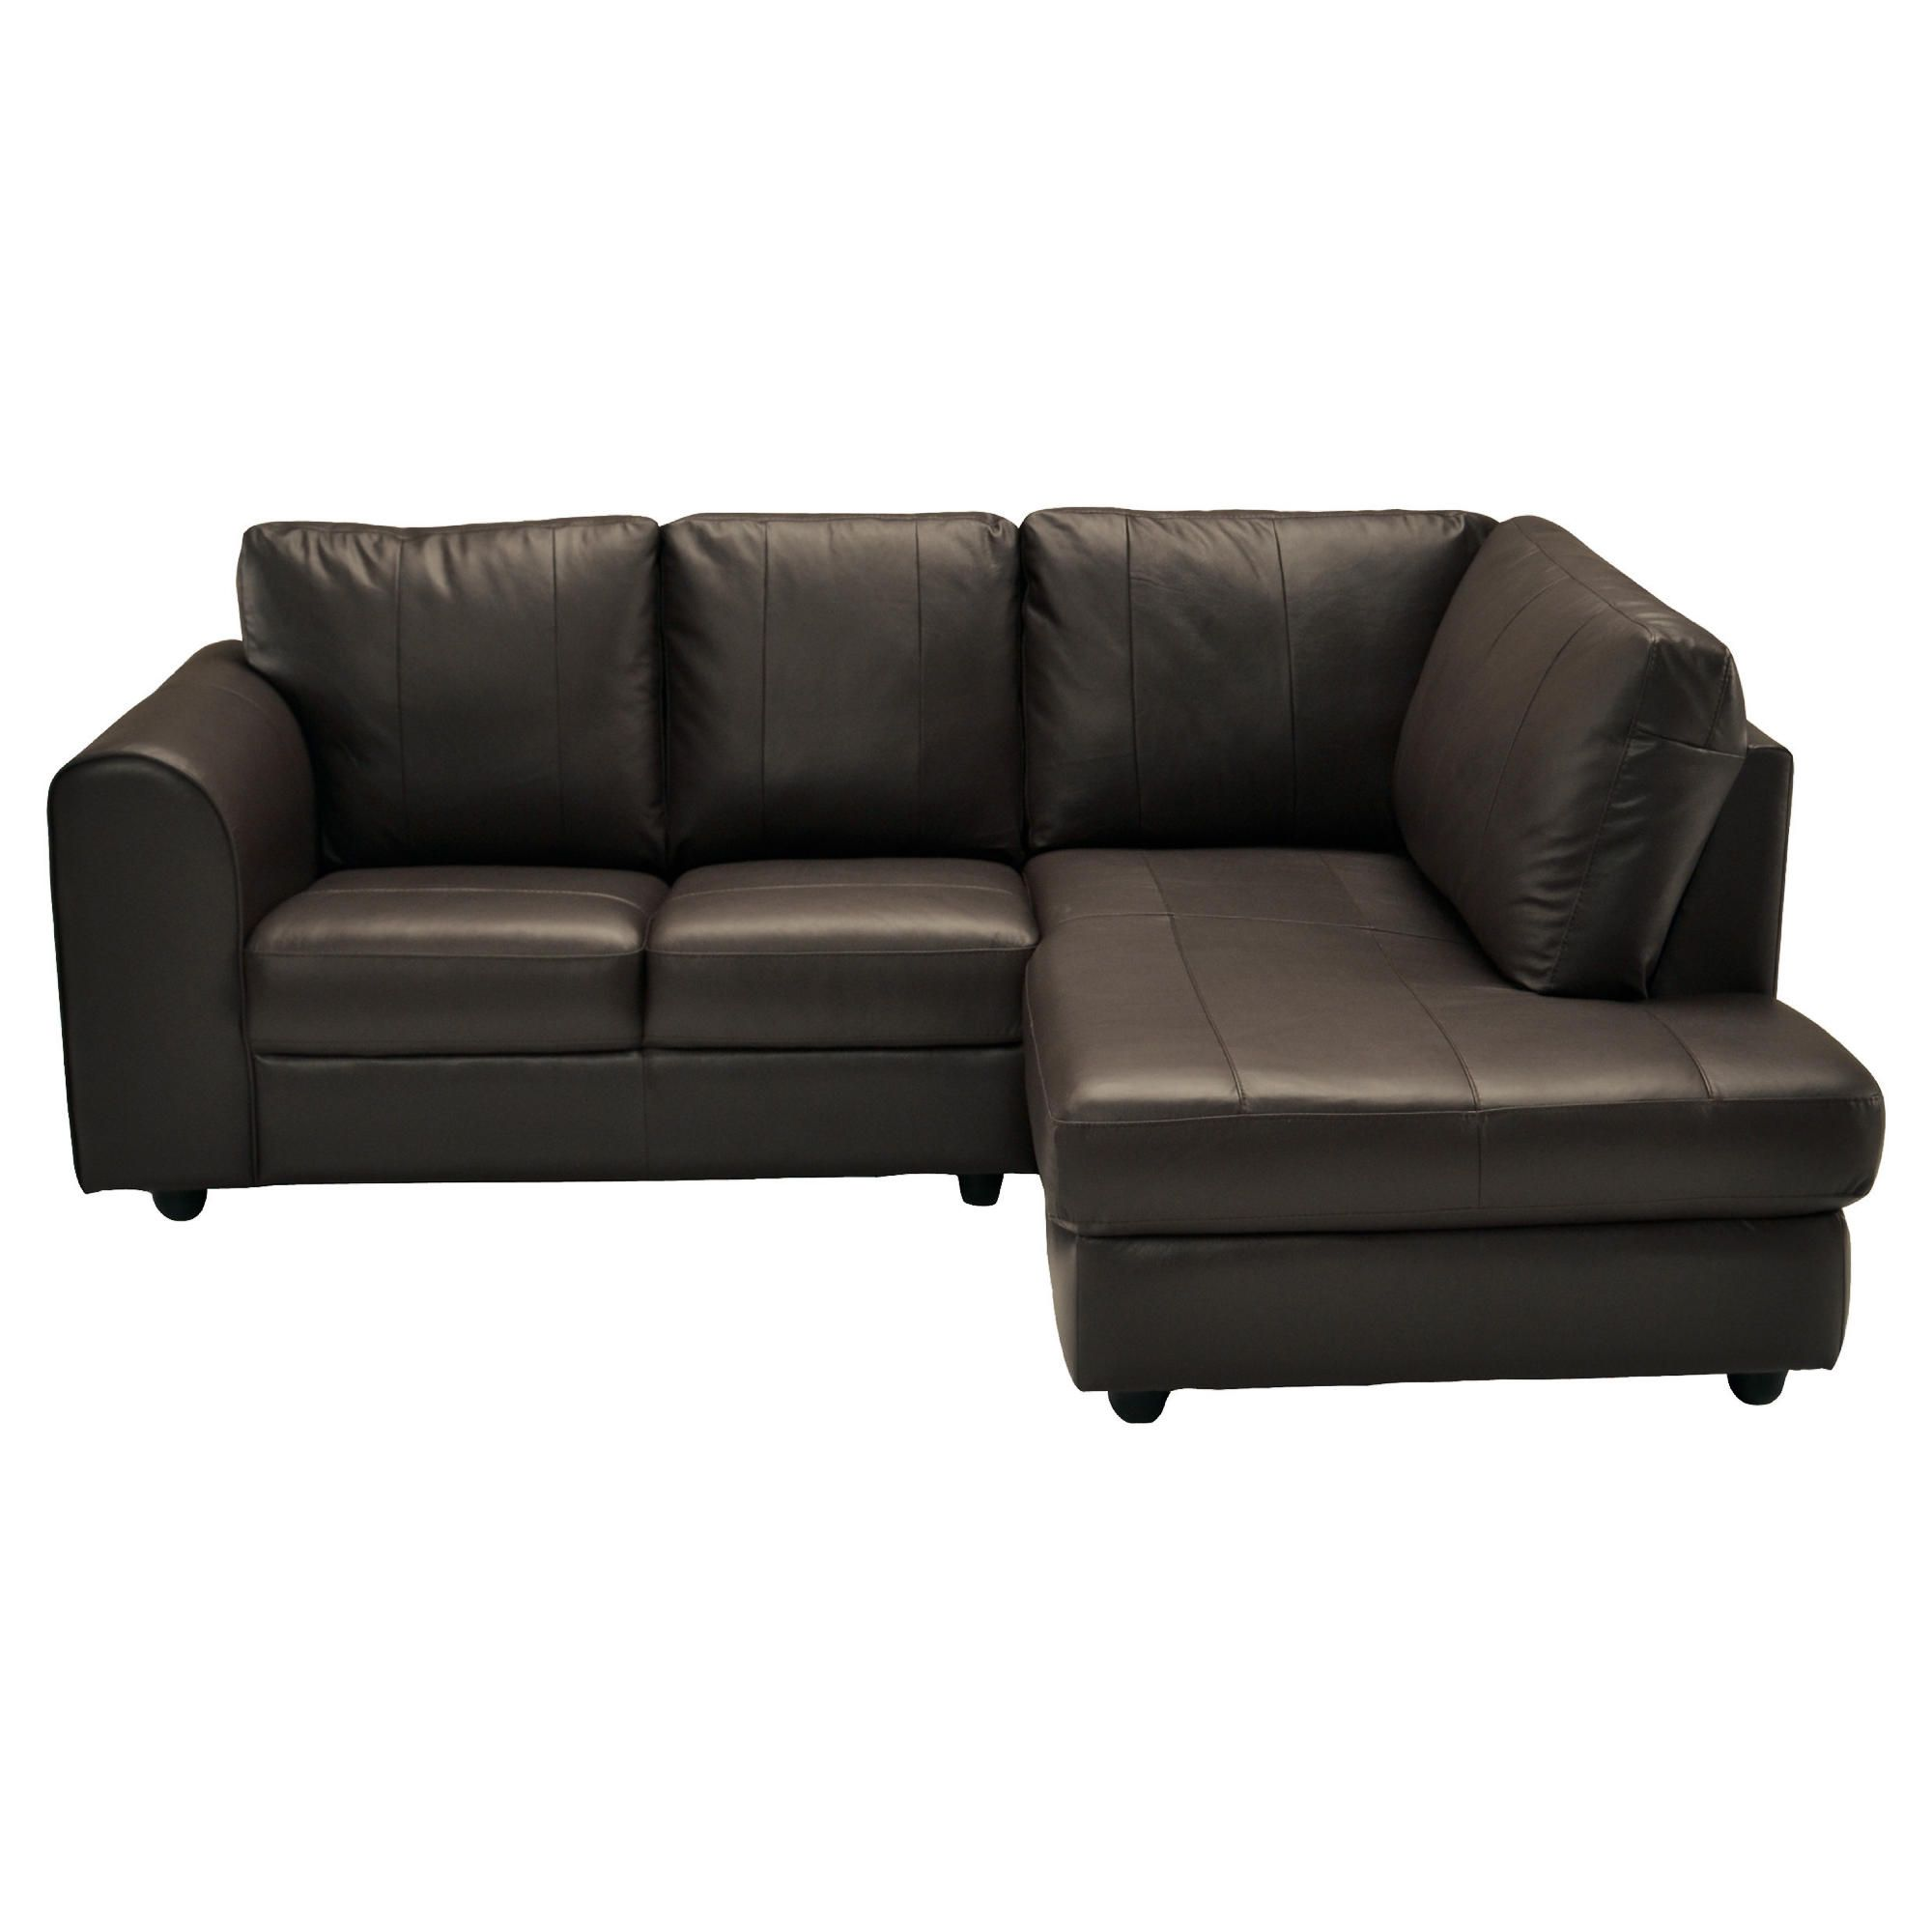 Venice Leather Sofa Bed Black 99900 View Product | Bed Mattress Sale